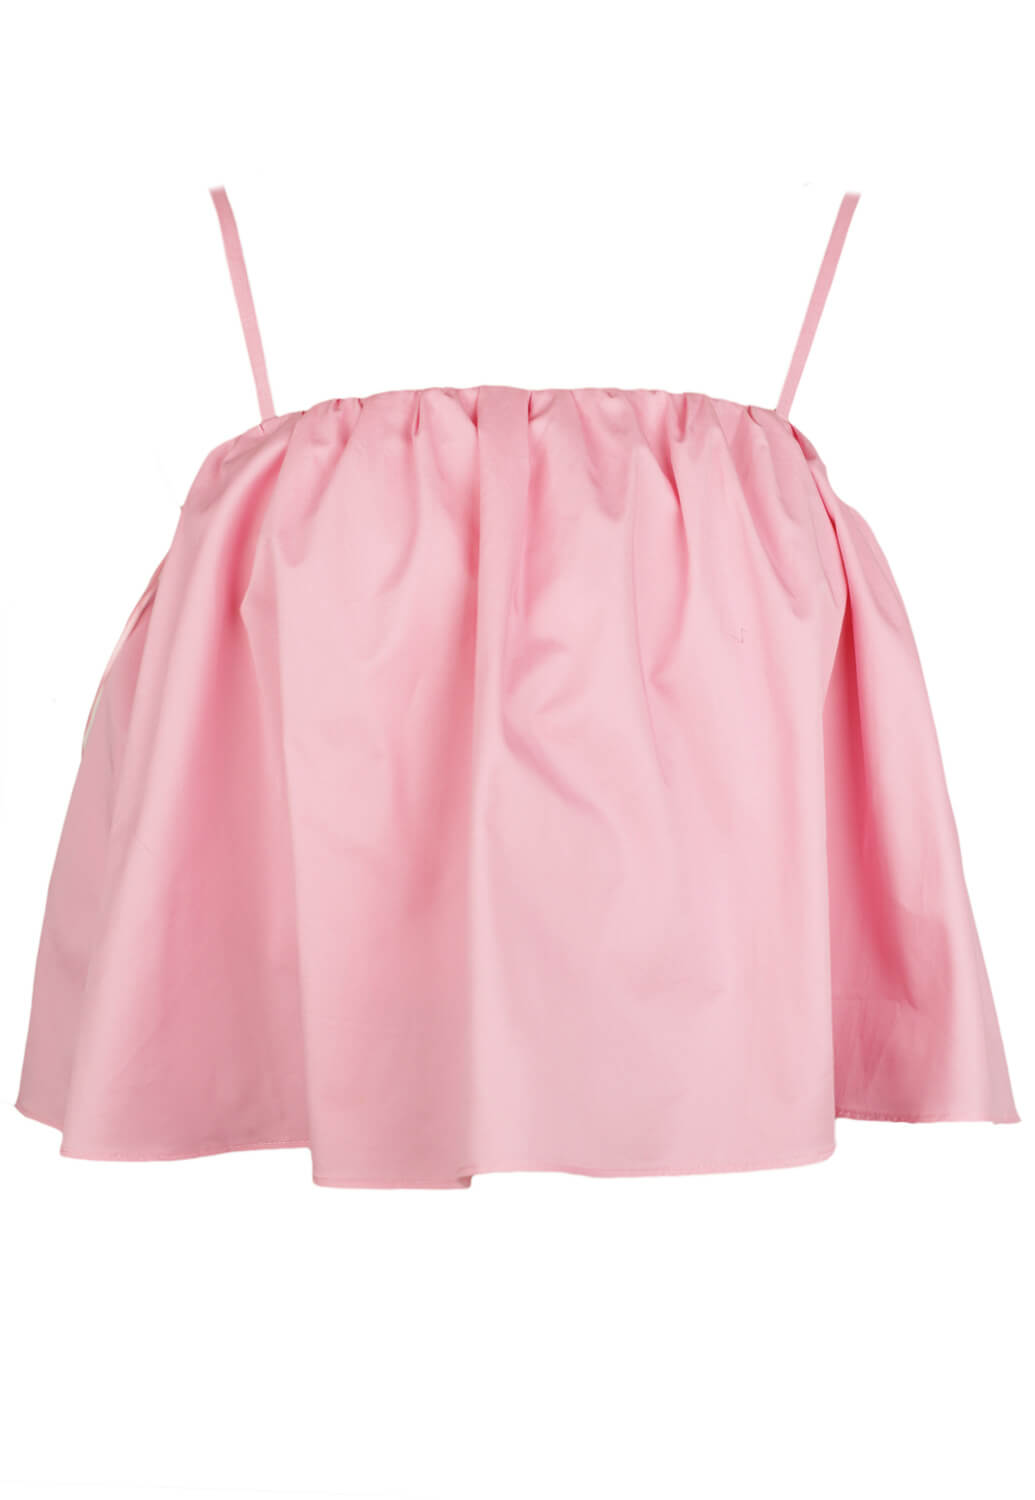 Maieu ZARA Evelyn Pink